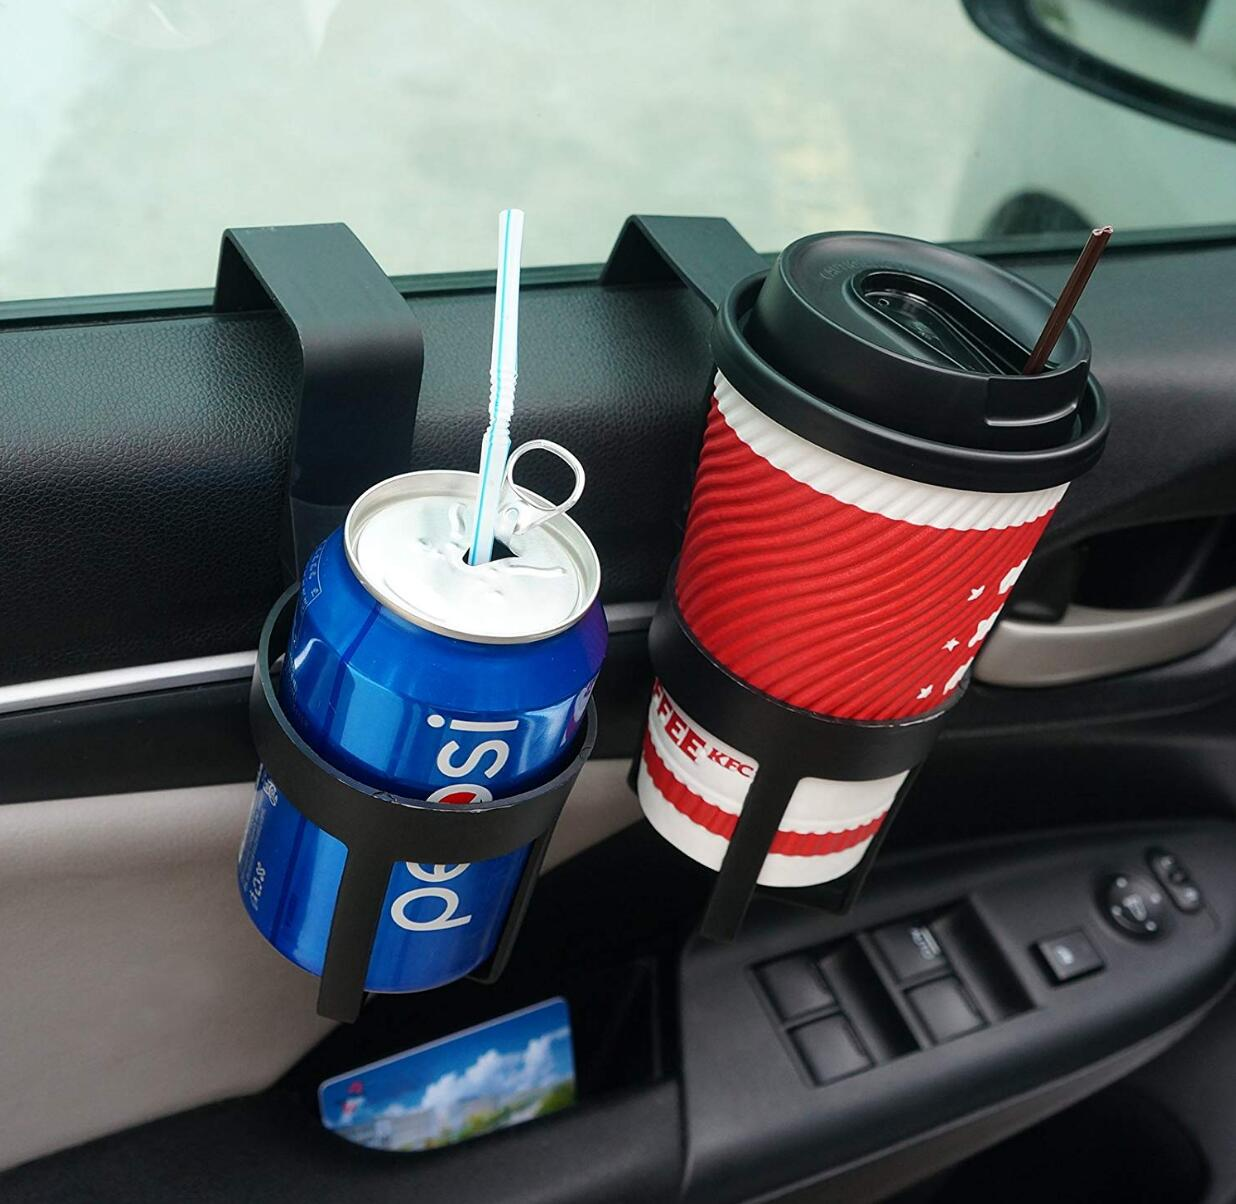 Car Drinks Cup Bottle Can Mount Holder Stand for peugeot 207 mazda fiat 500 opel insignia amg fiat citroen citroen c5 C3-in Car Tax Disc Holders from Automobiles & Motorcycles